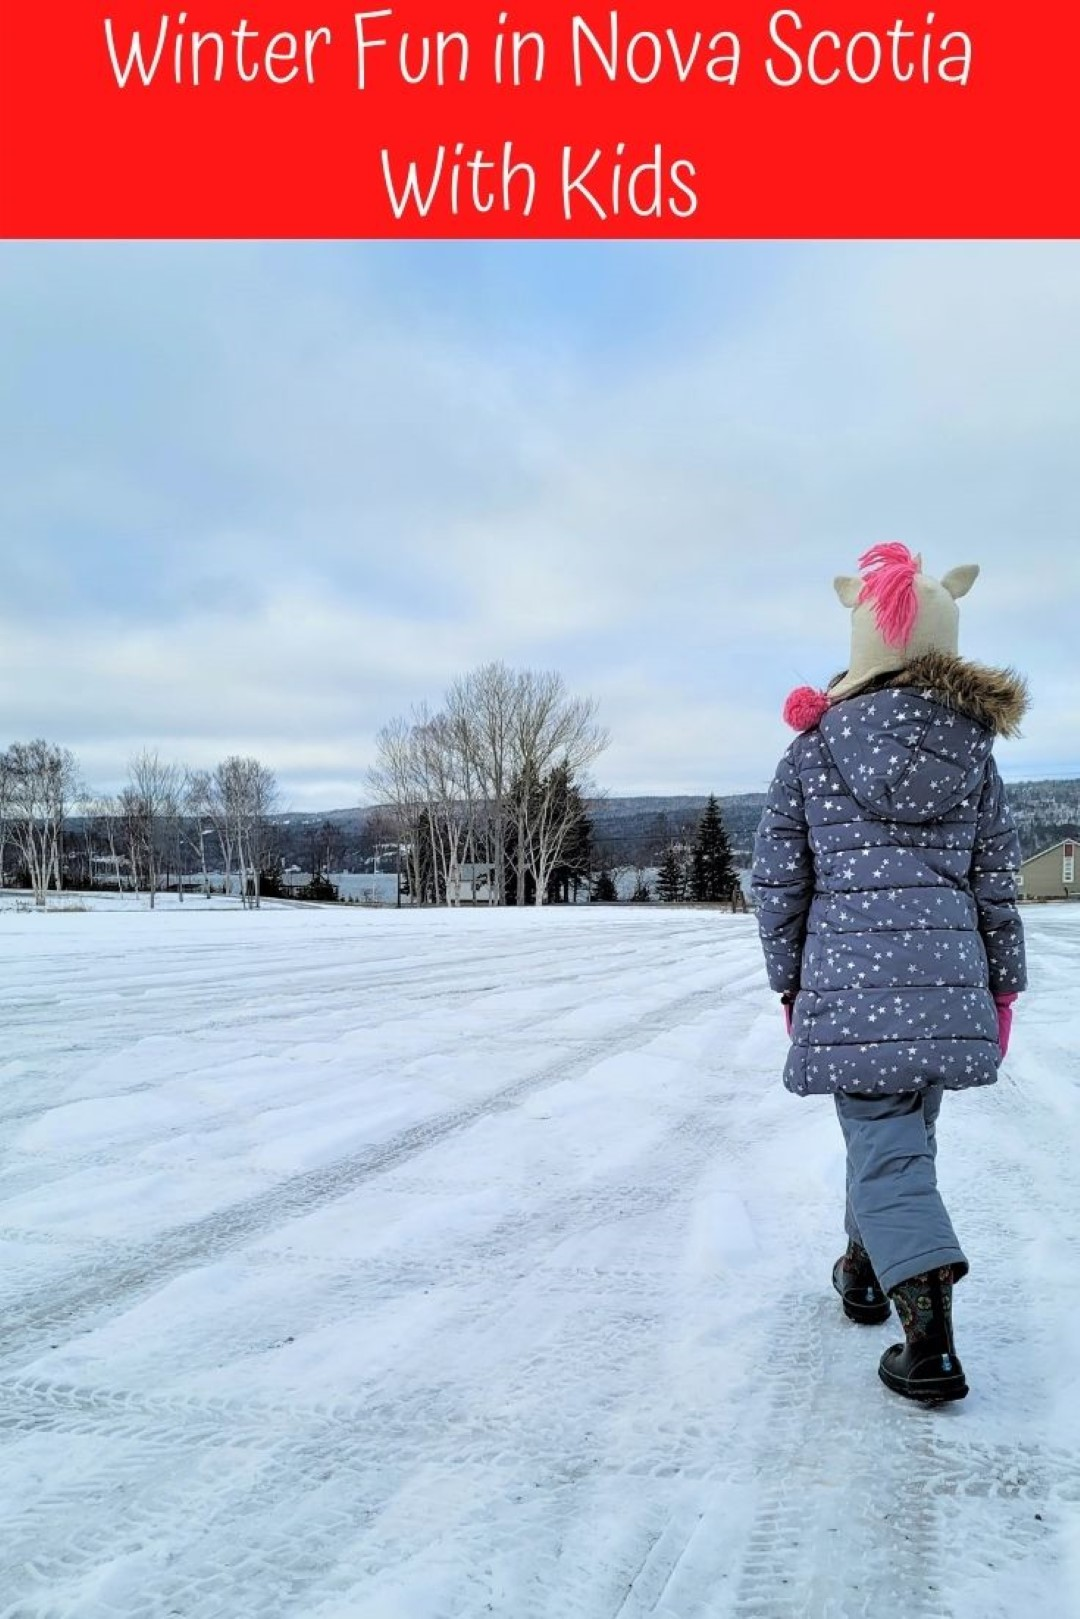 Things to do in the Winter in Nova Scotia Family Travel (Large)